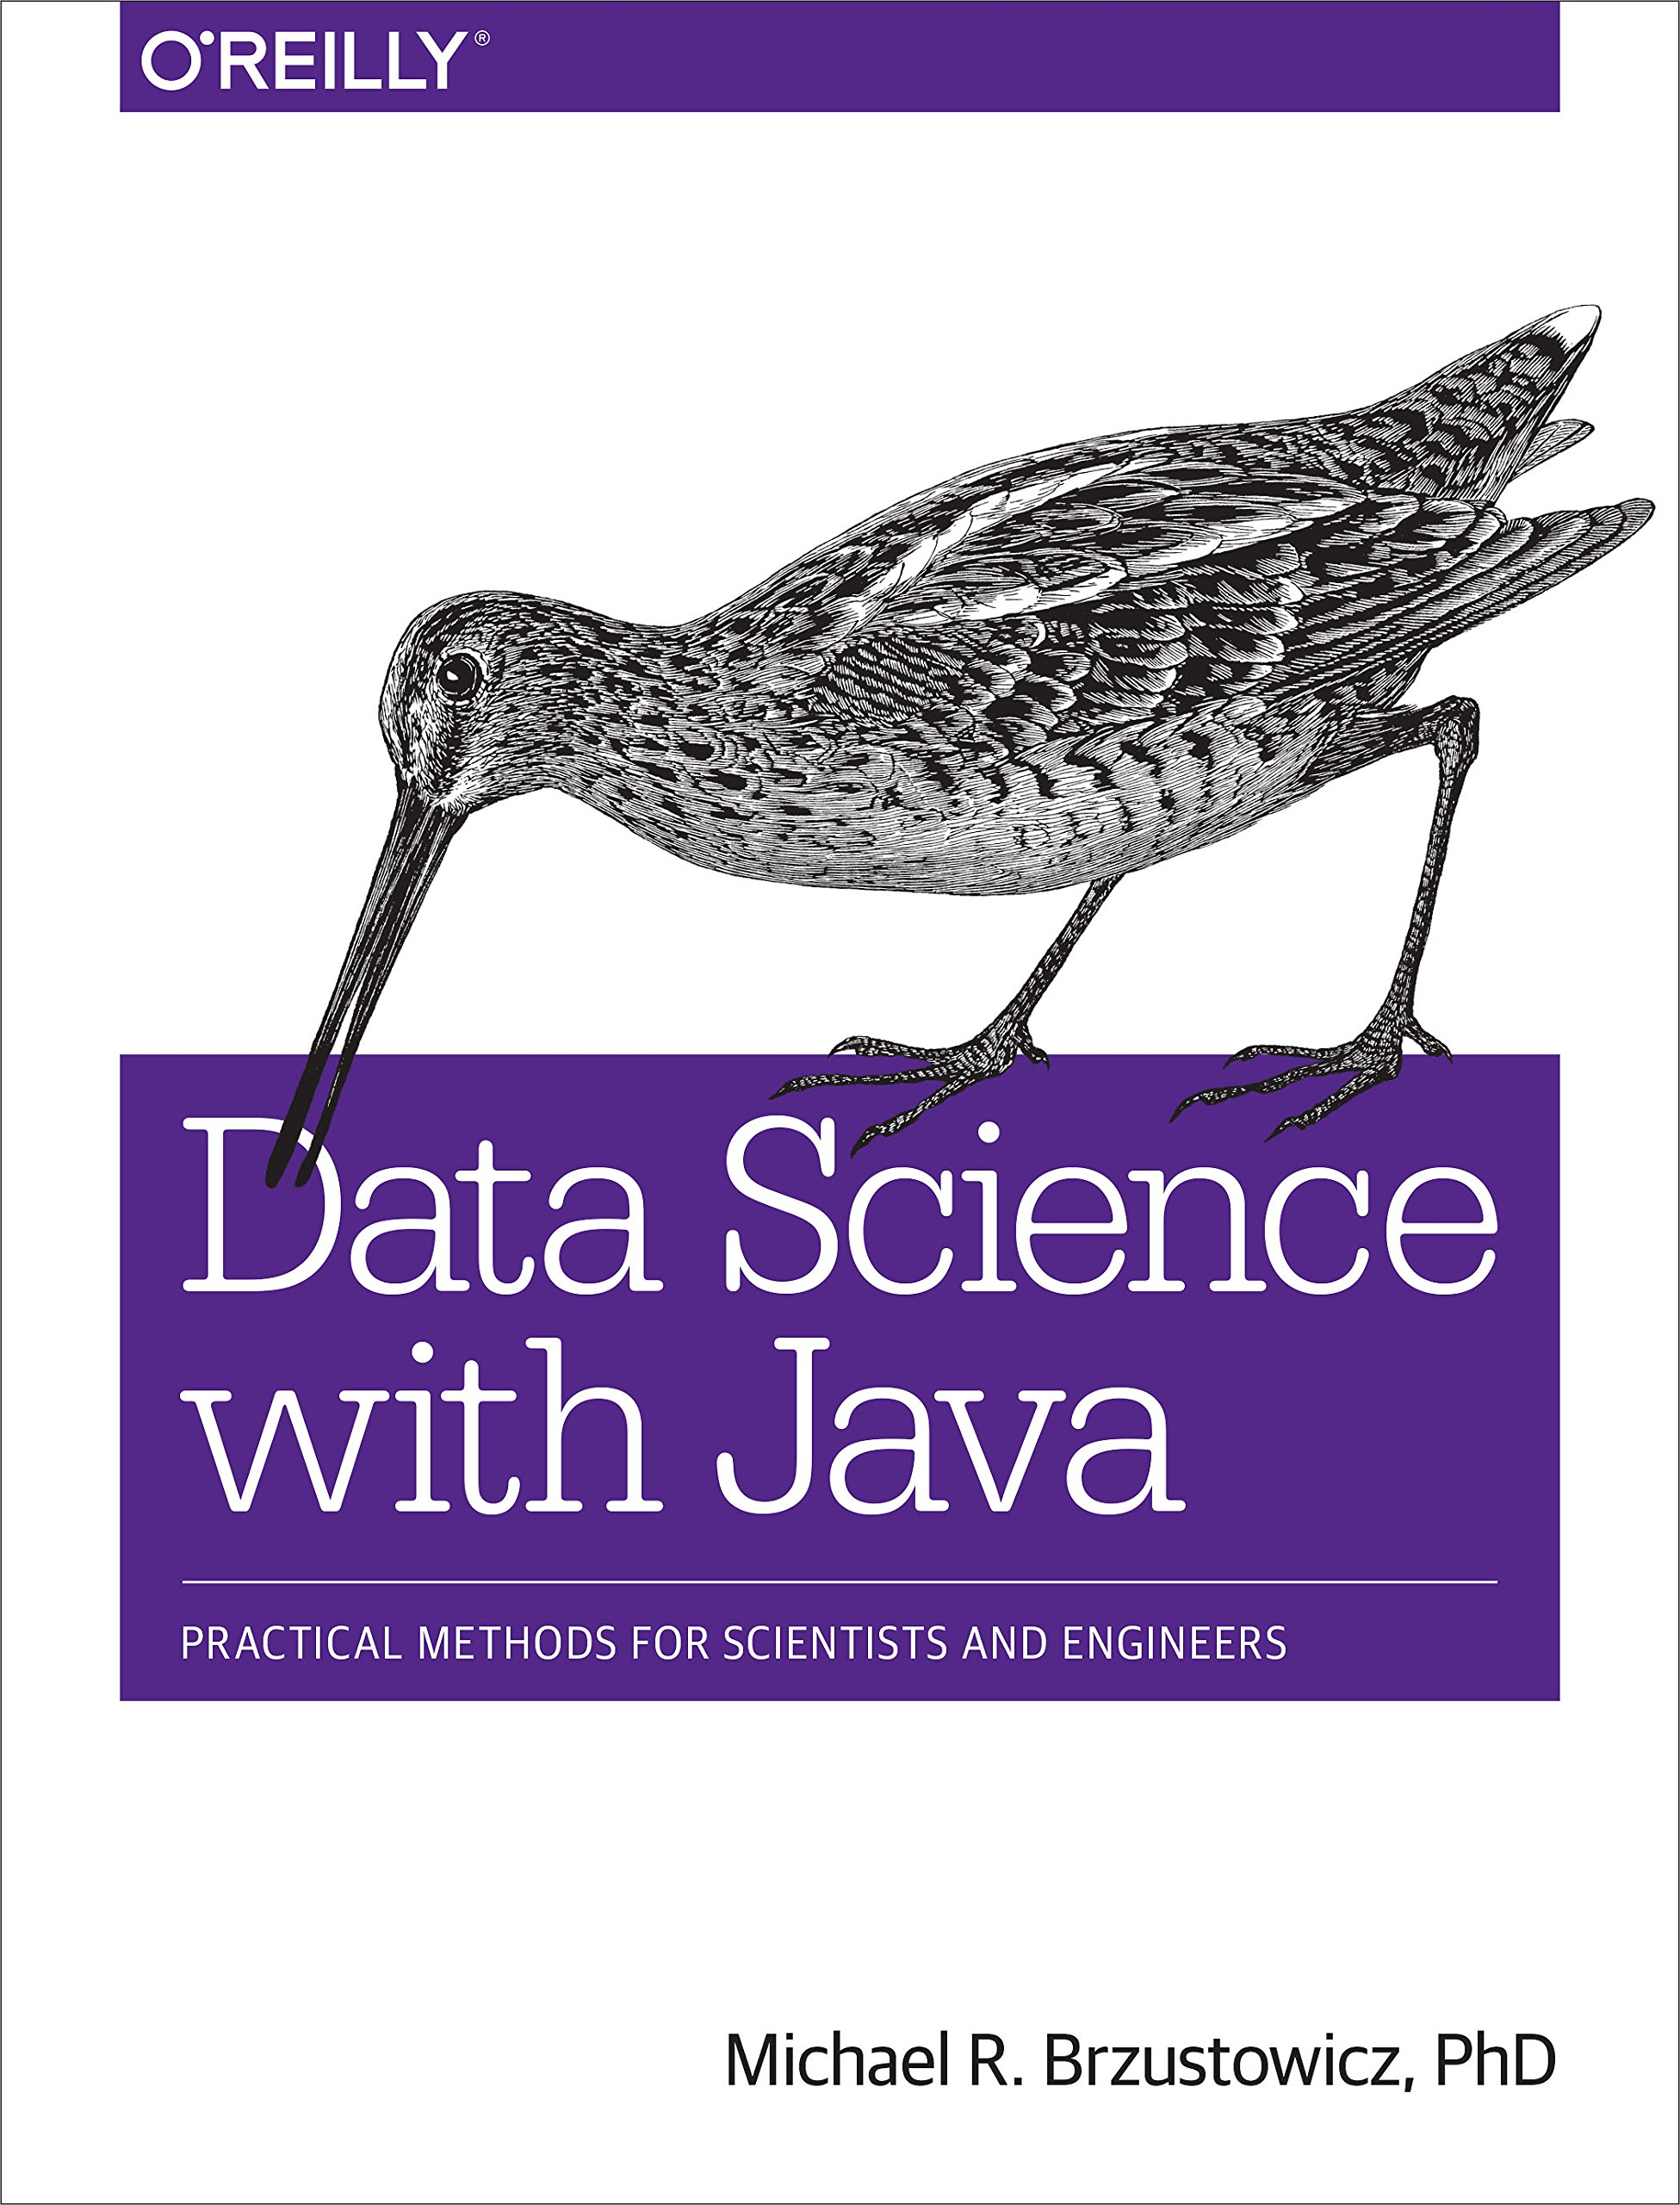 Data Science with Java: Practical Methods for Scientists and Engineers by O'Reilly Media